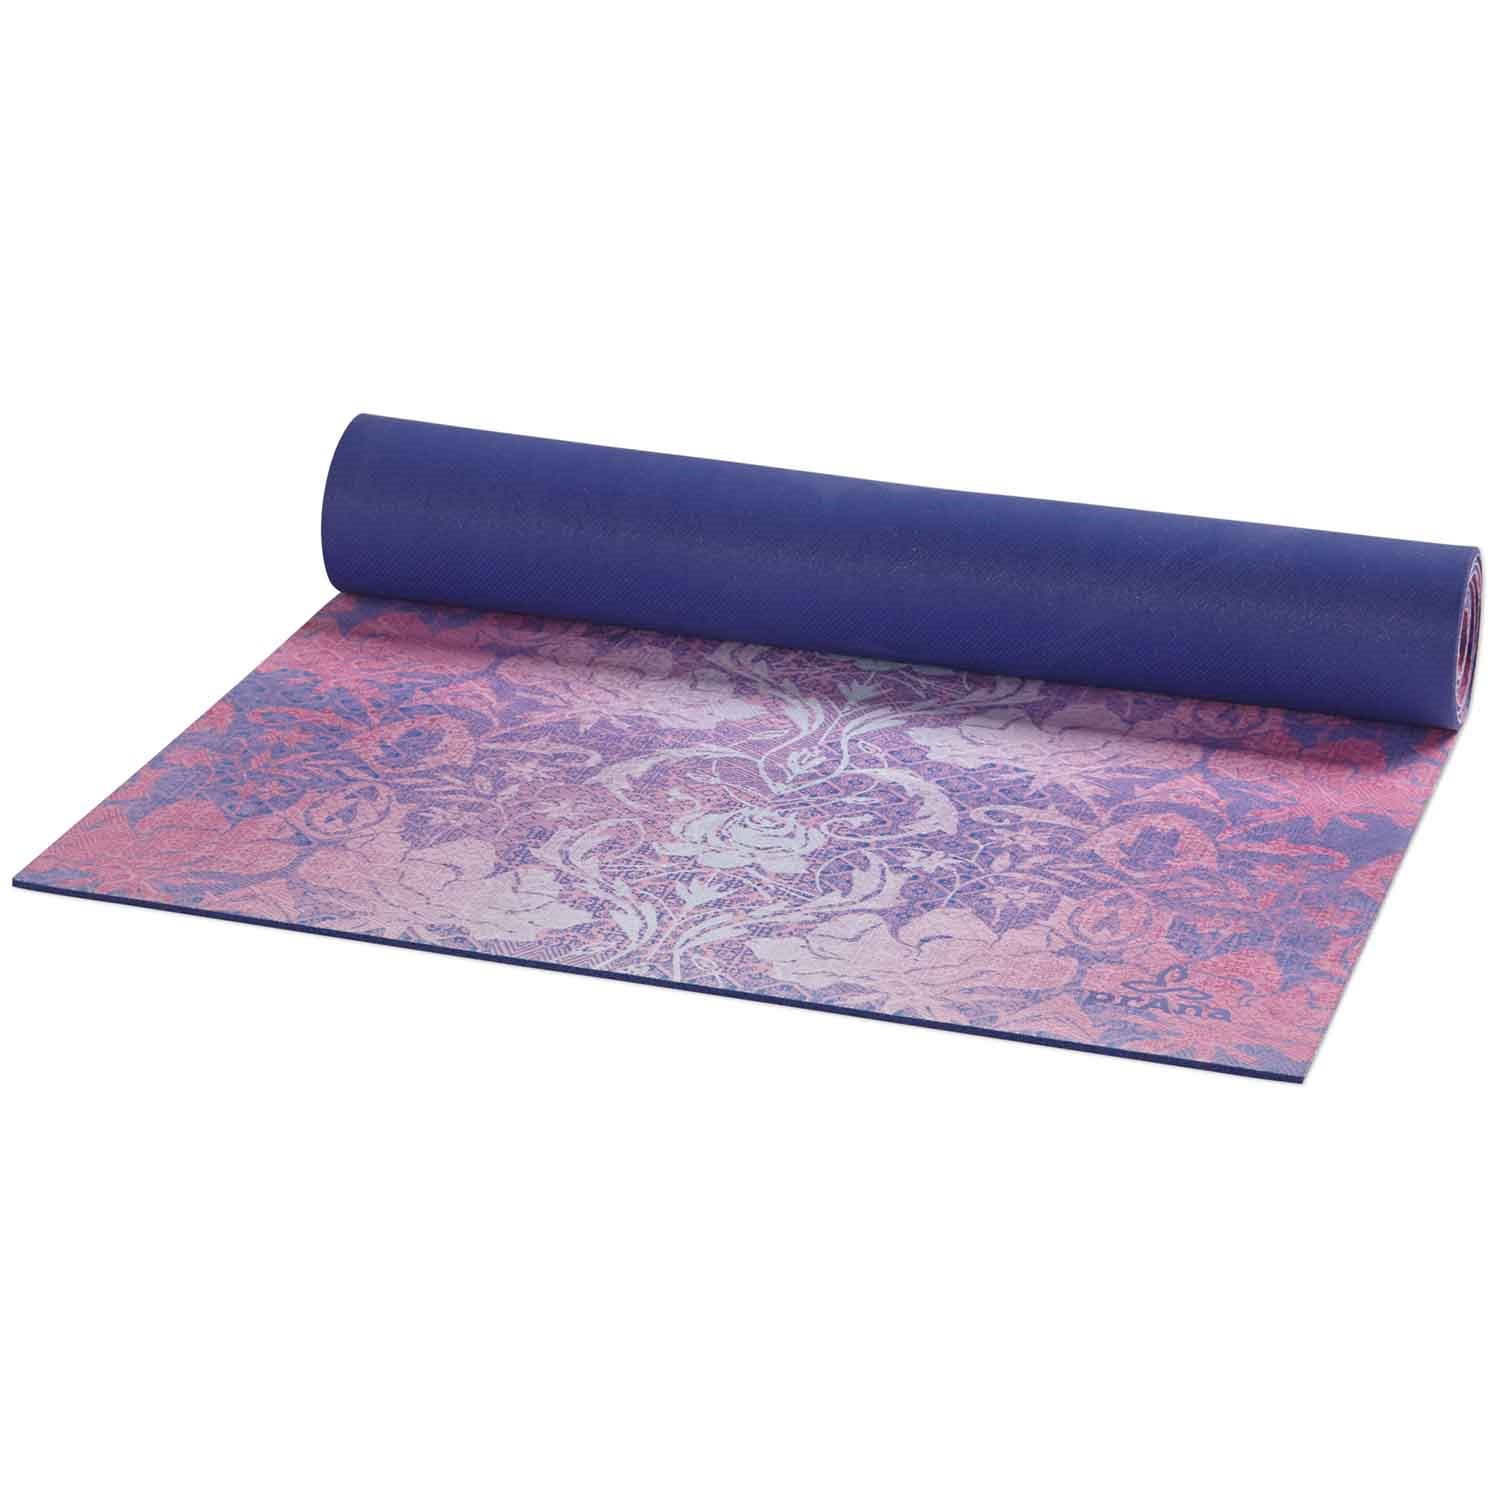 mats dreamweaver thick goods dream yoga printed mat weaver best online products vagabond